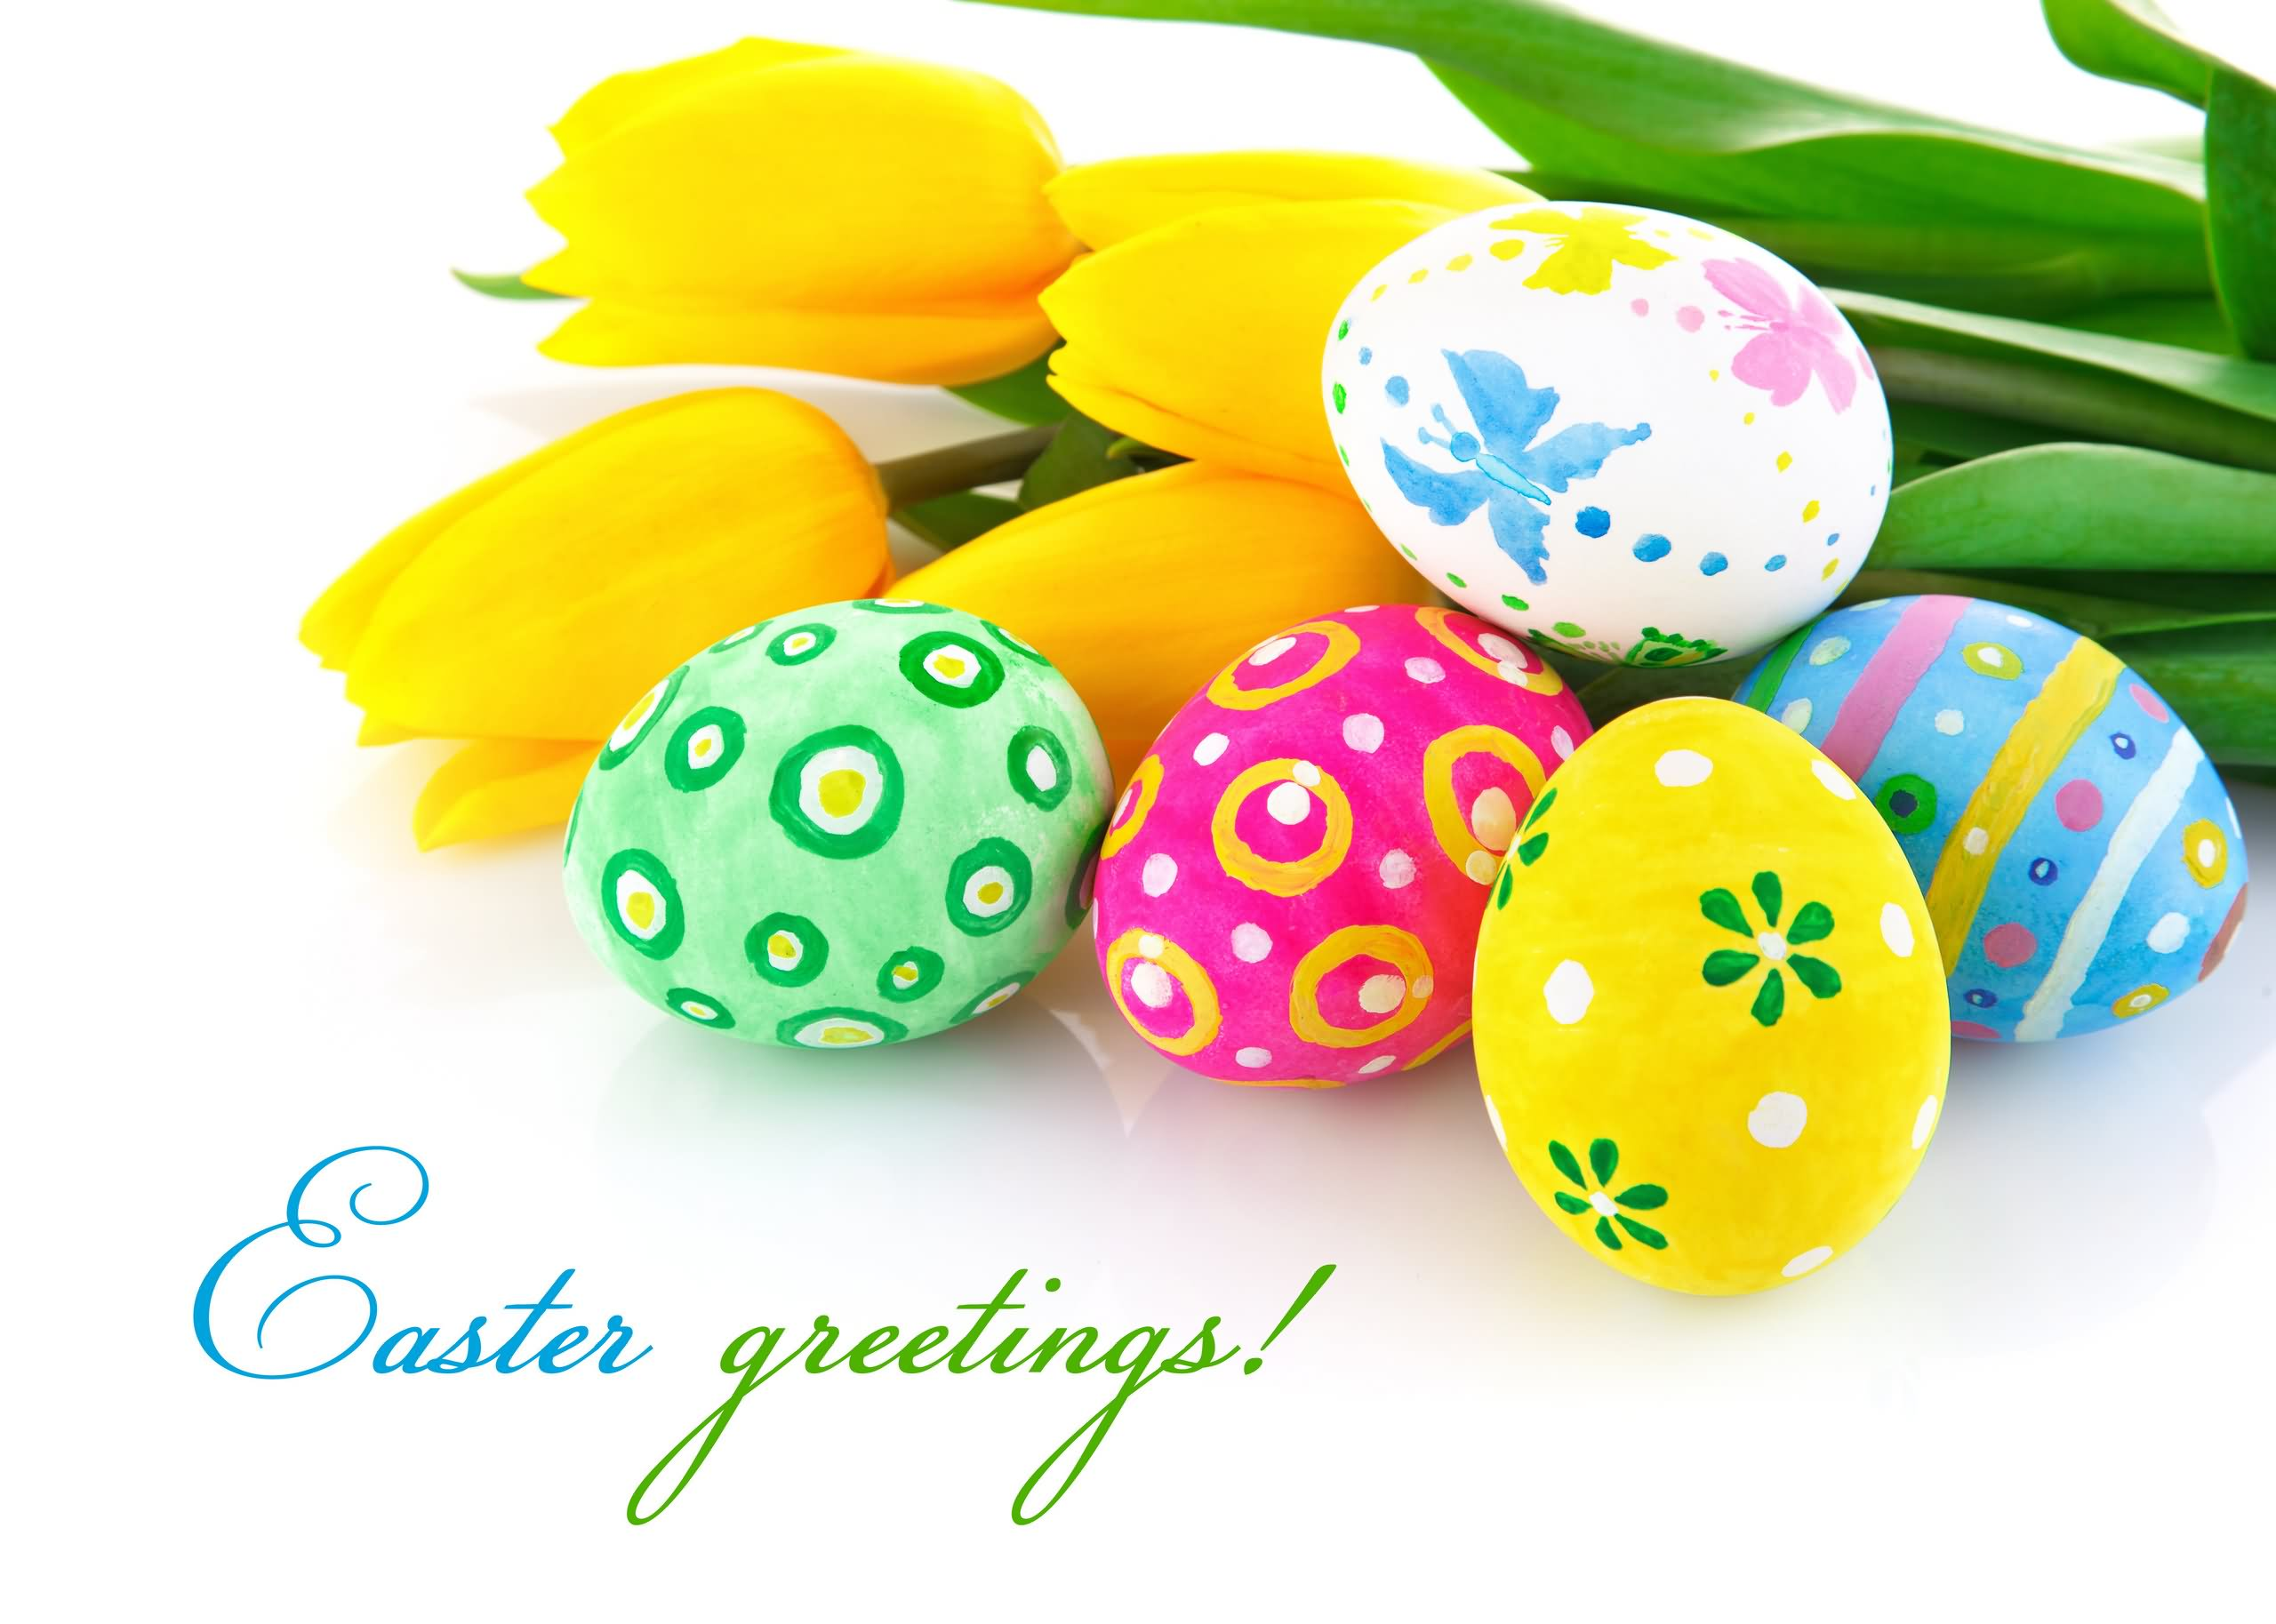 Mahogany card clipart for easter.